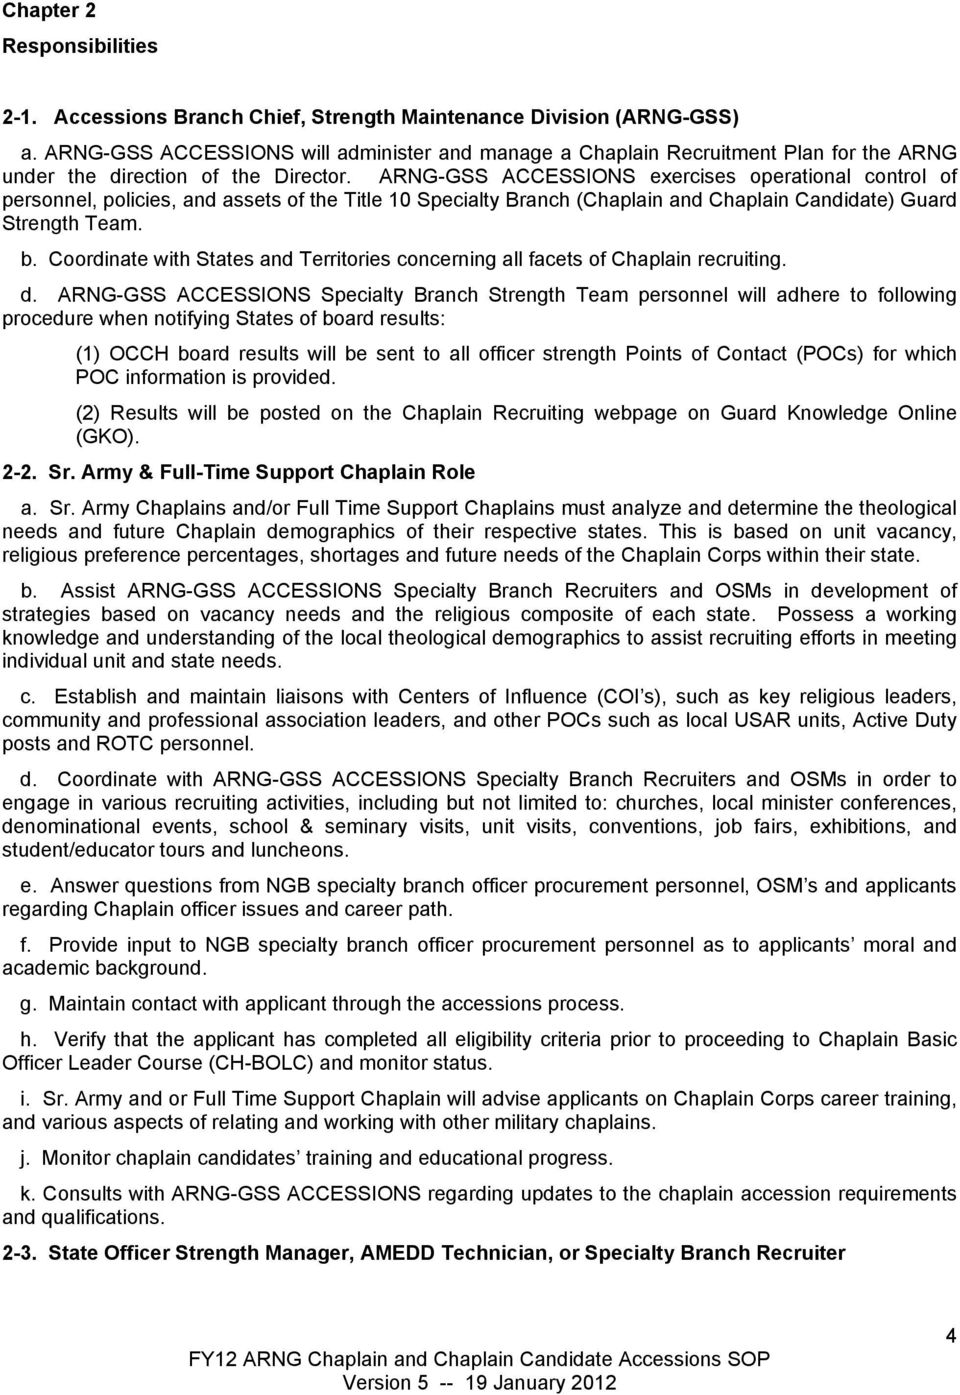 Fy12 army national guard standard operating procedures for chaplain arng gss accessions exercises operational control of personnel policies and assets of the thecheapjerseys Gallery